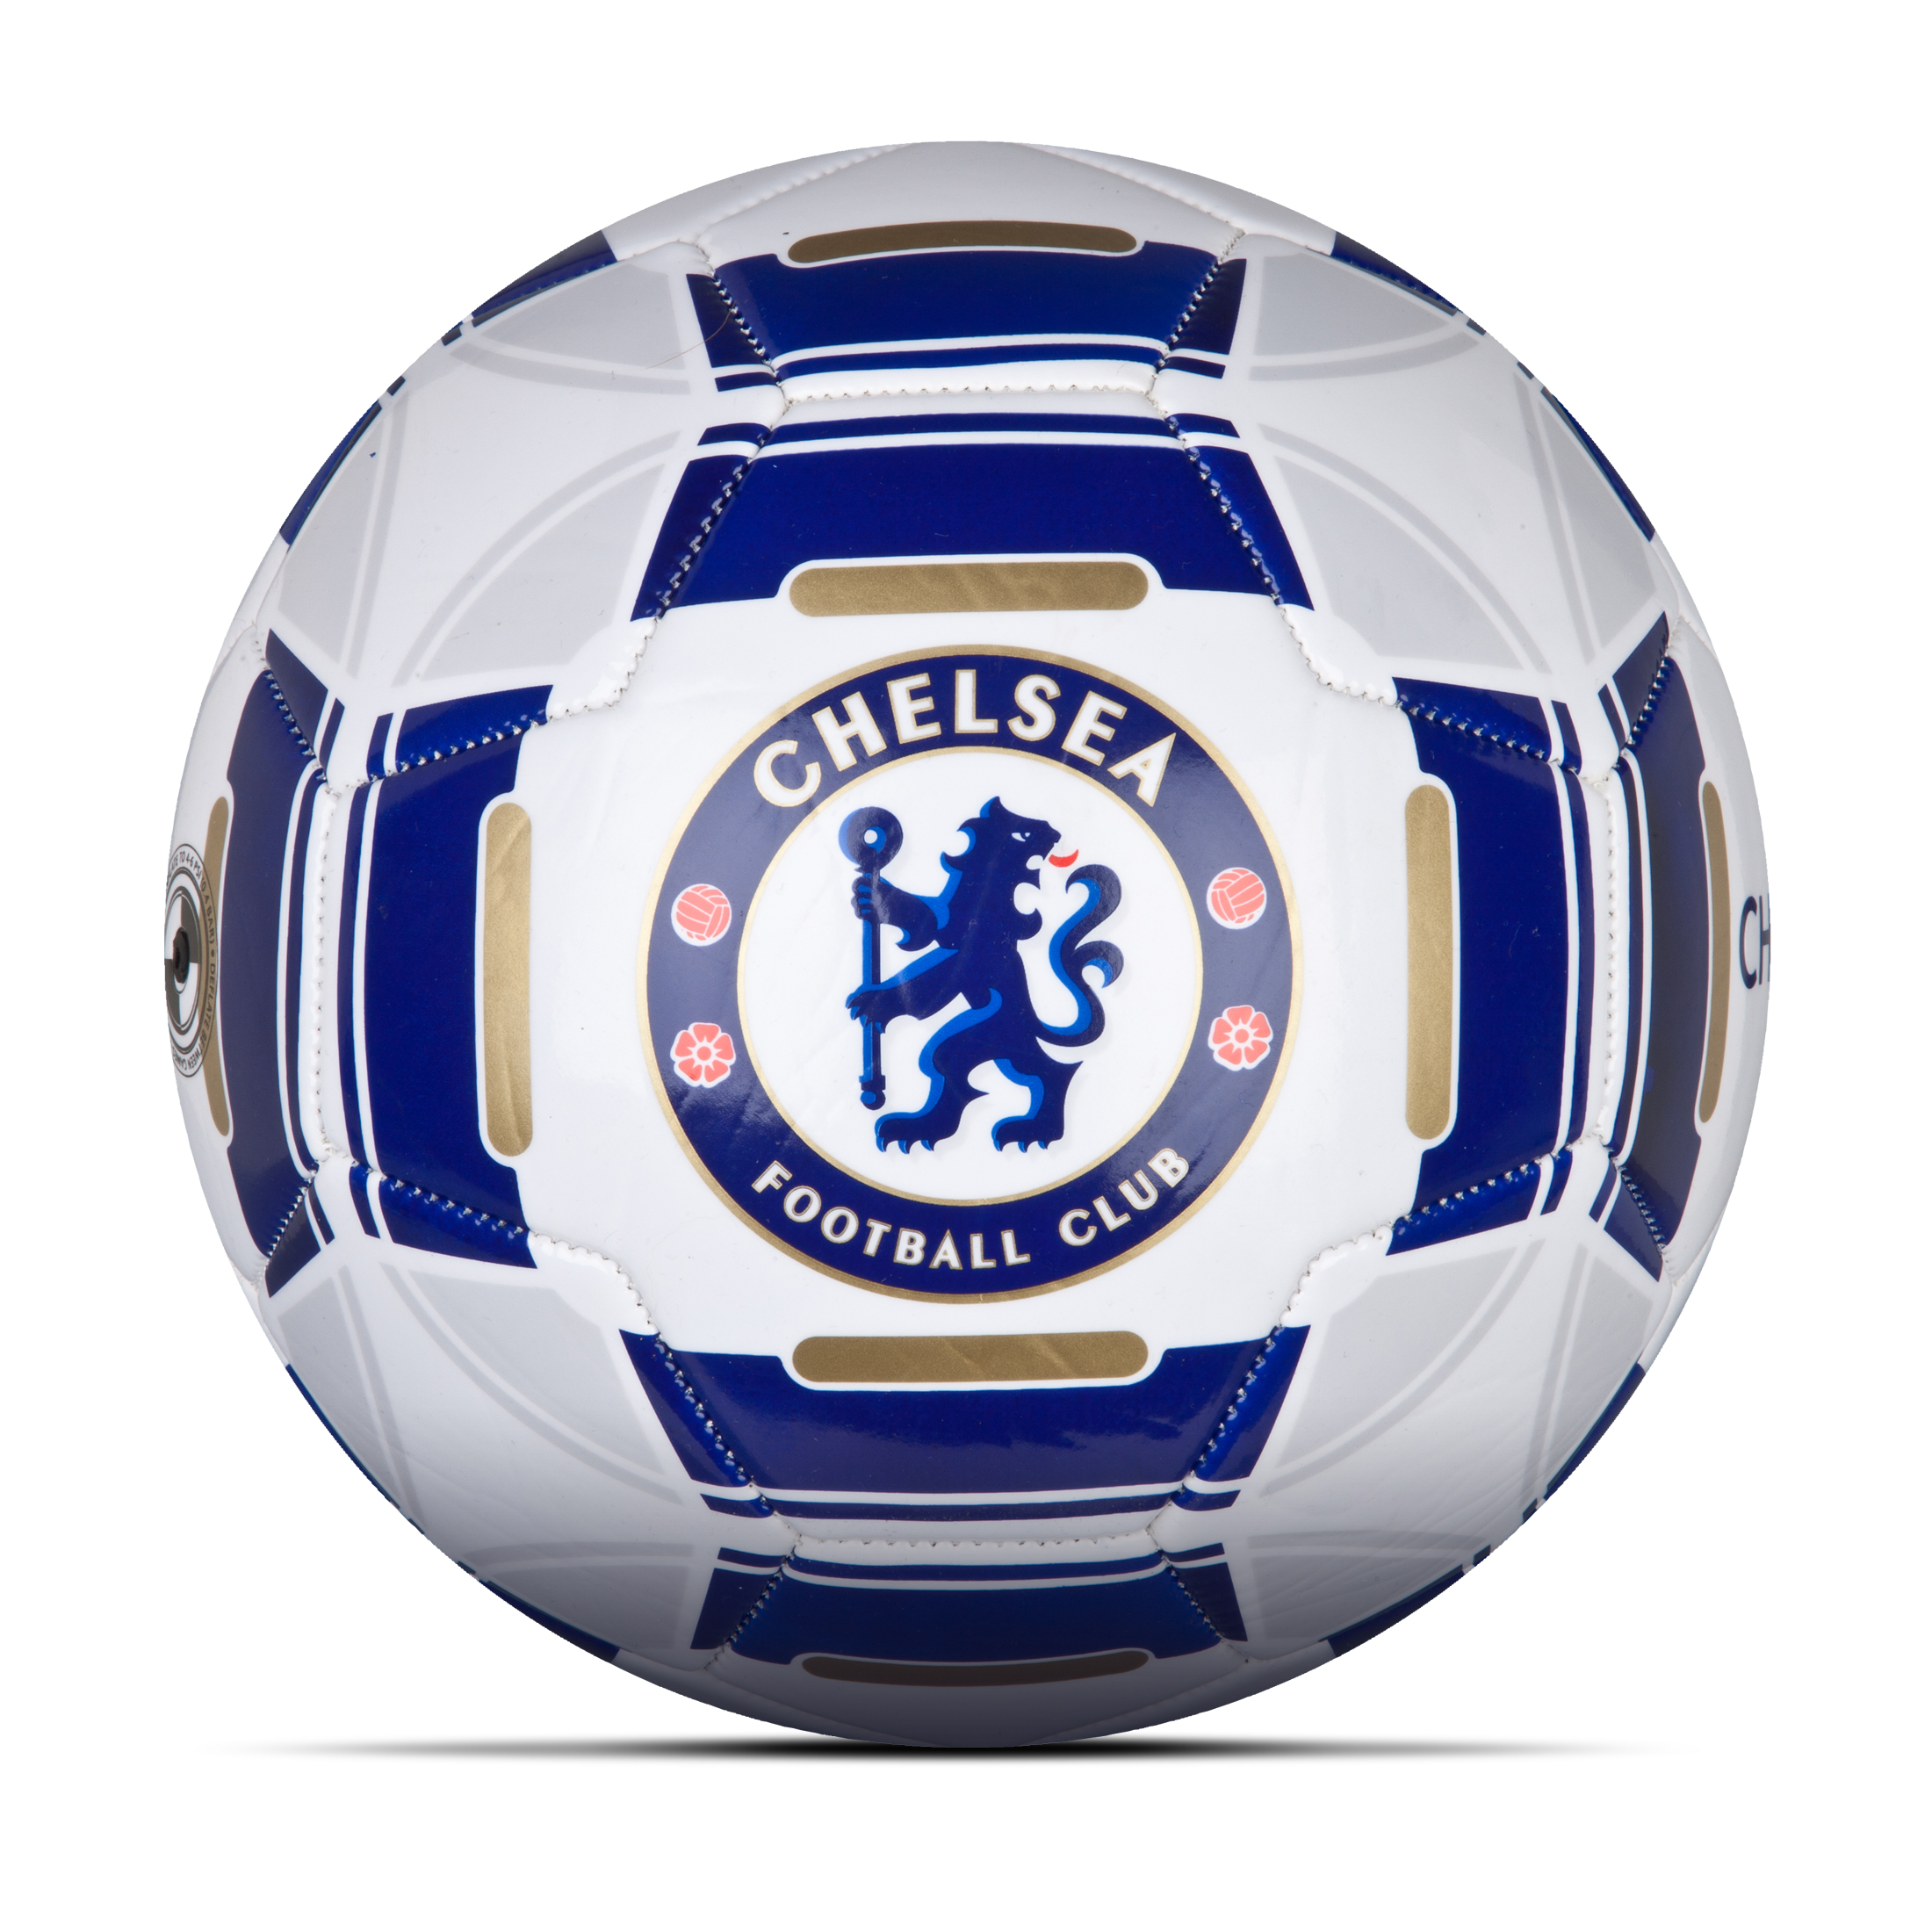 Chelsea Morph Football - Size 5